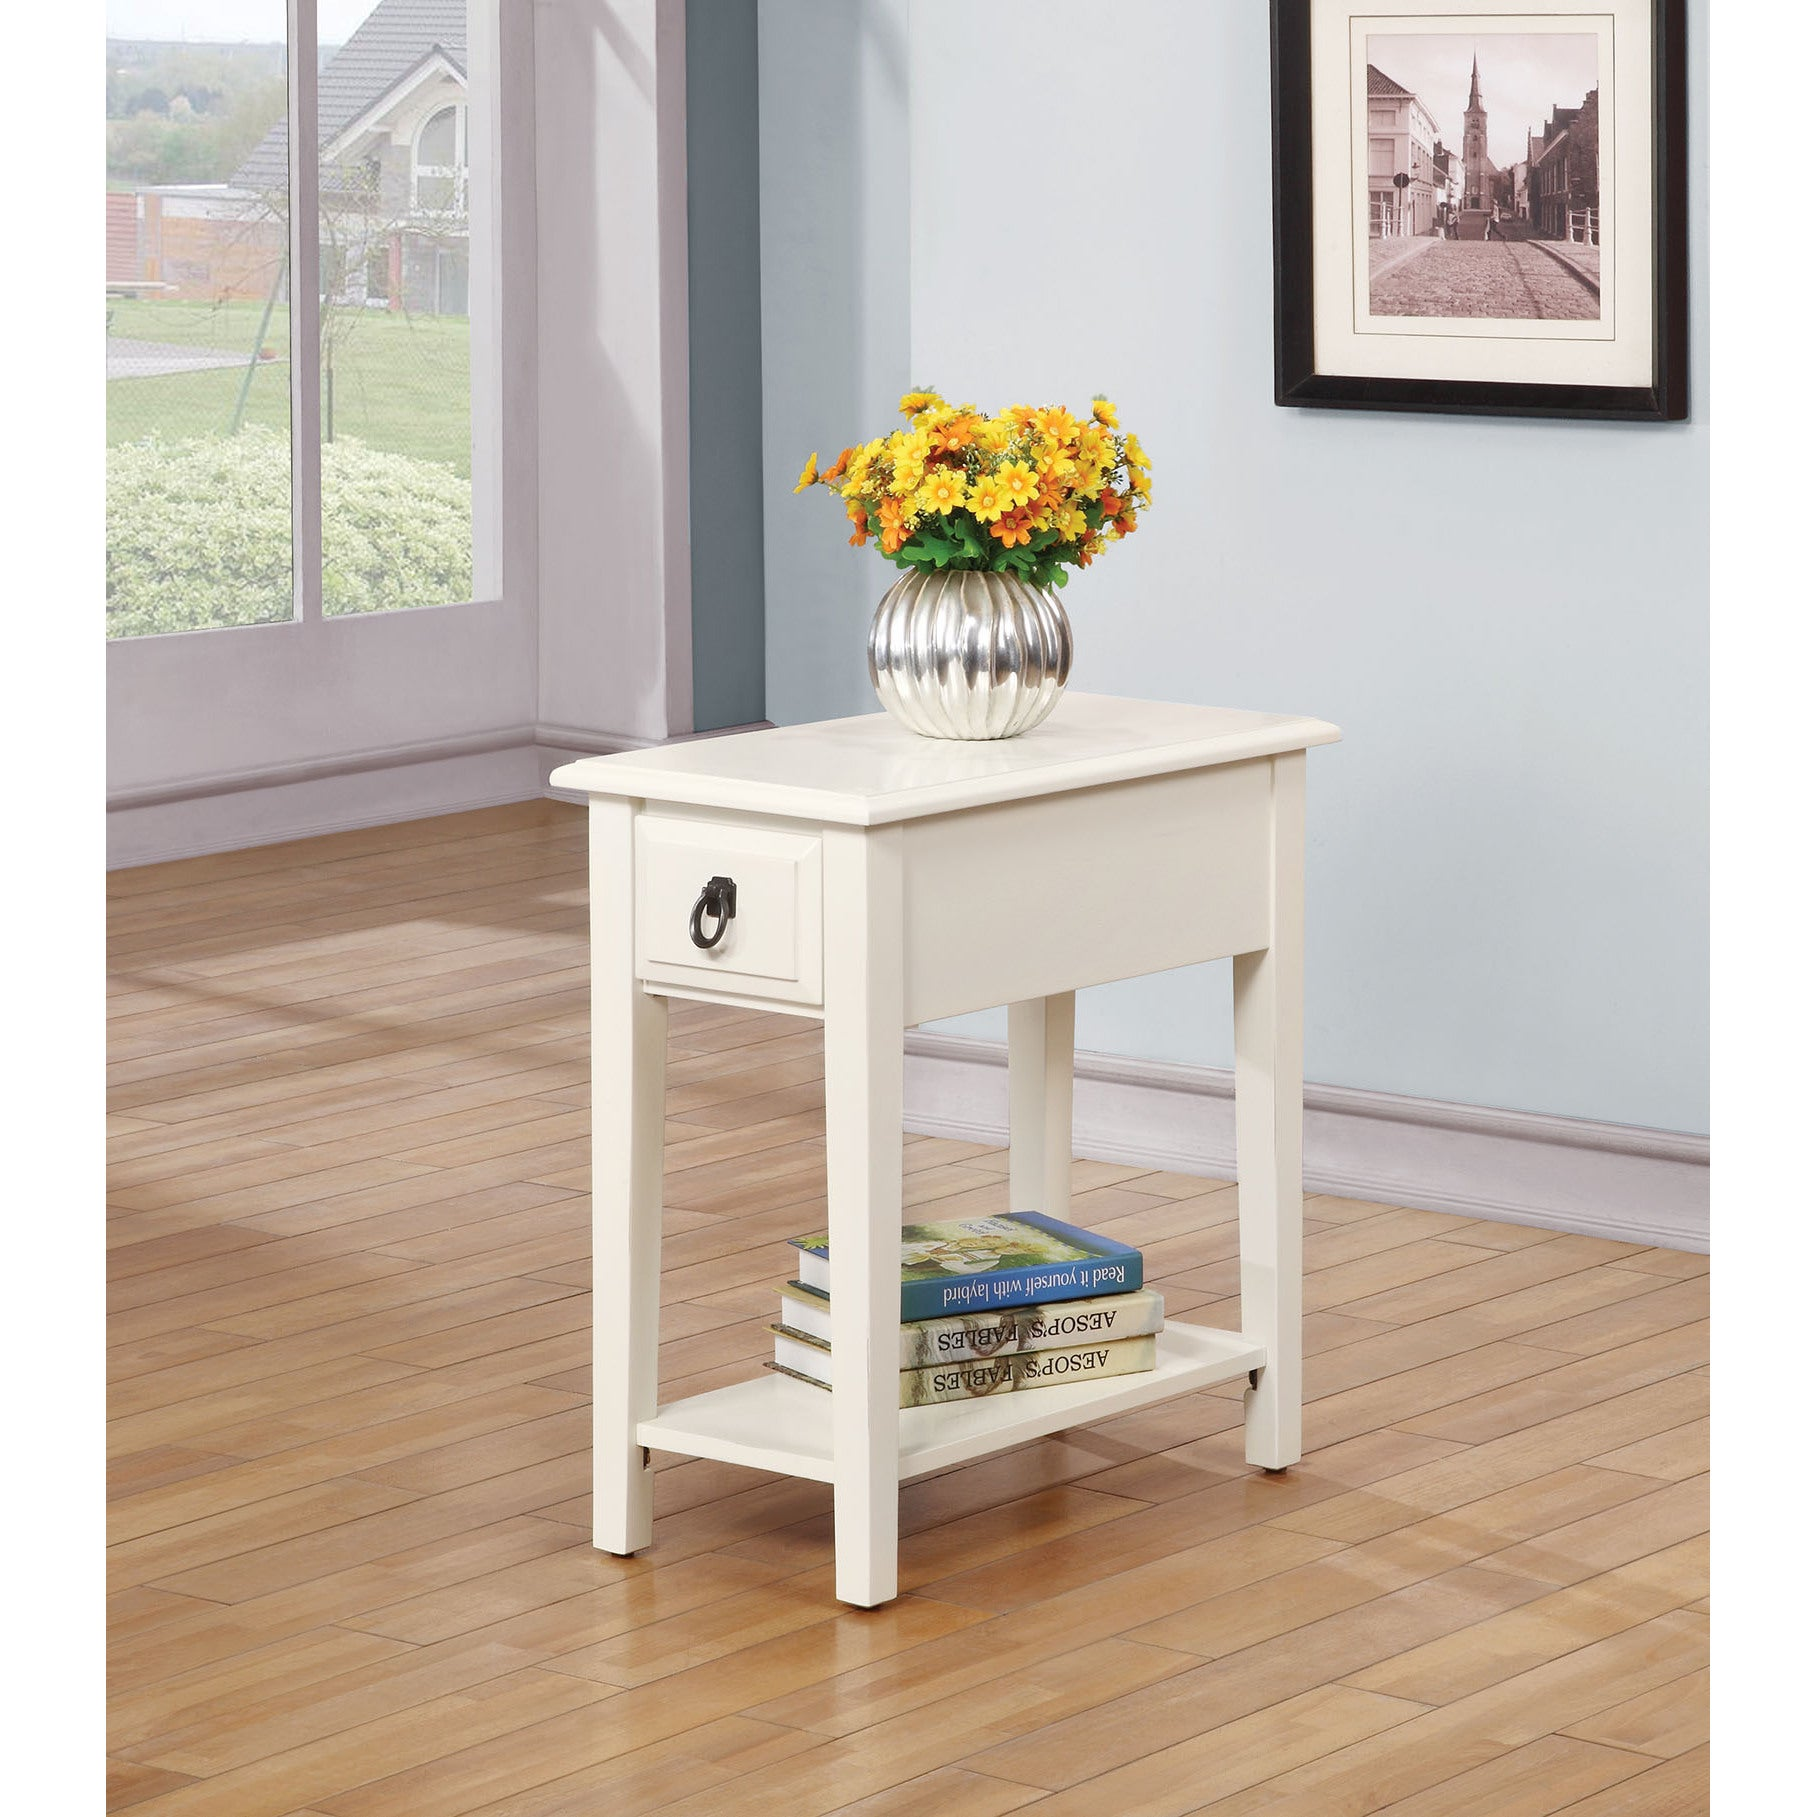 Product Details. End Side Table White Wood Living Room Furniture Rustic Farmhouse